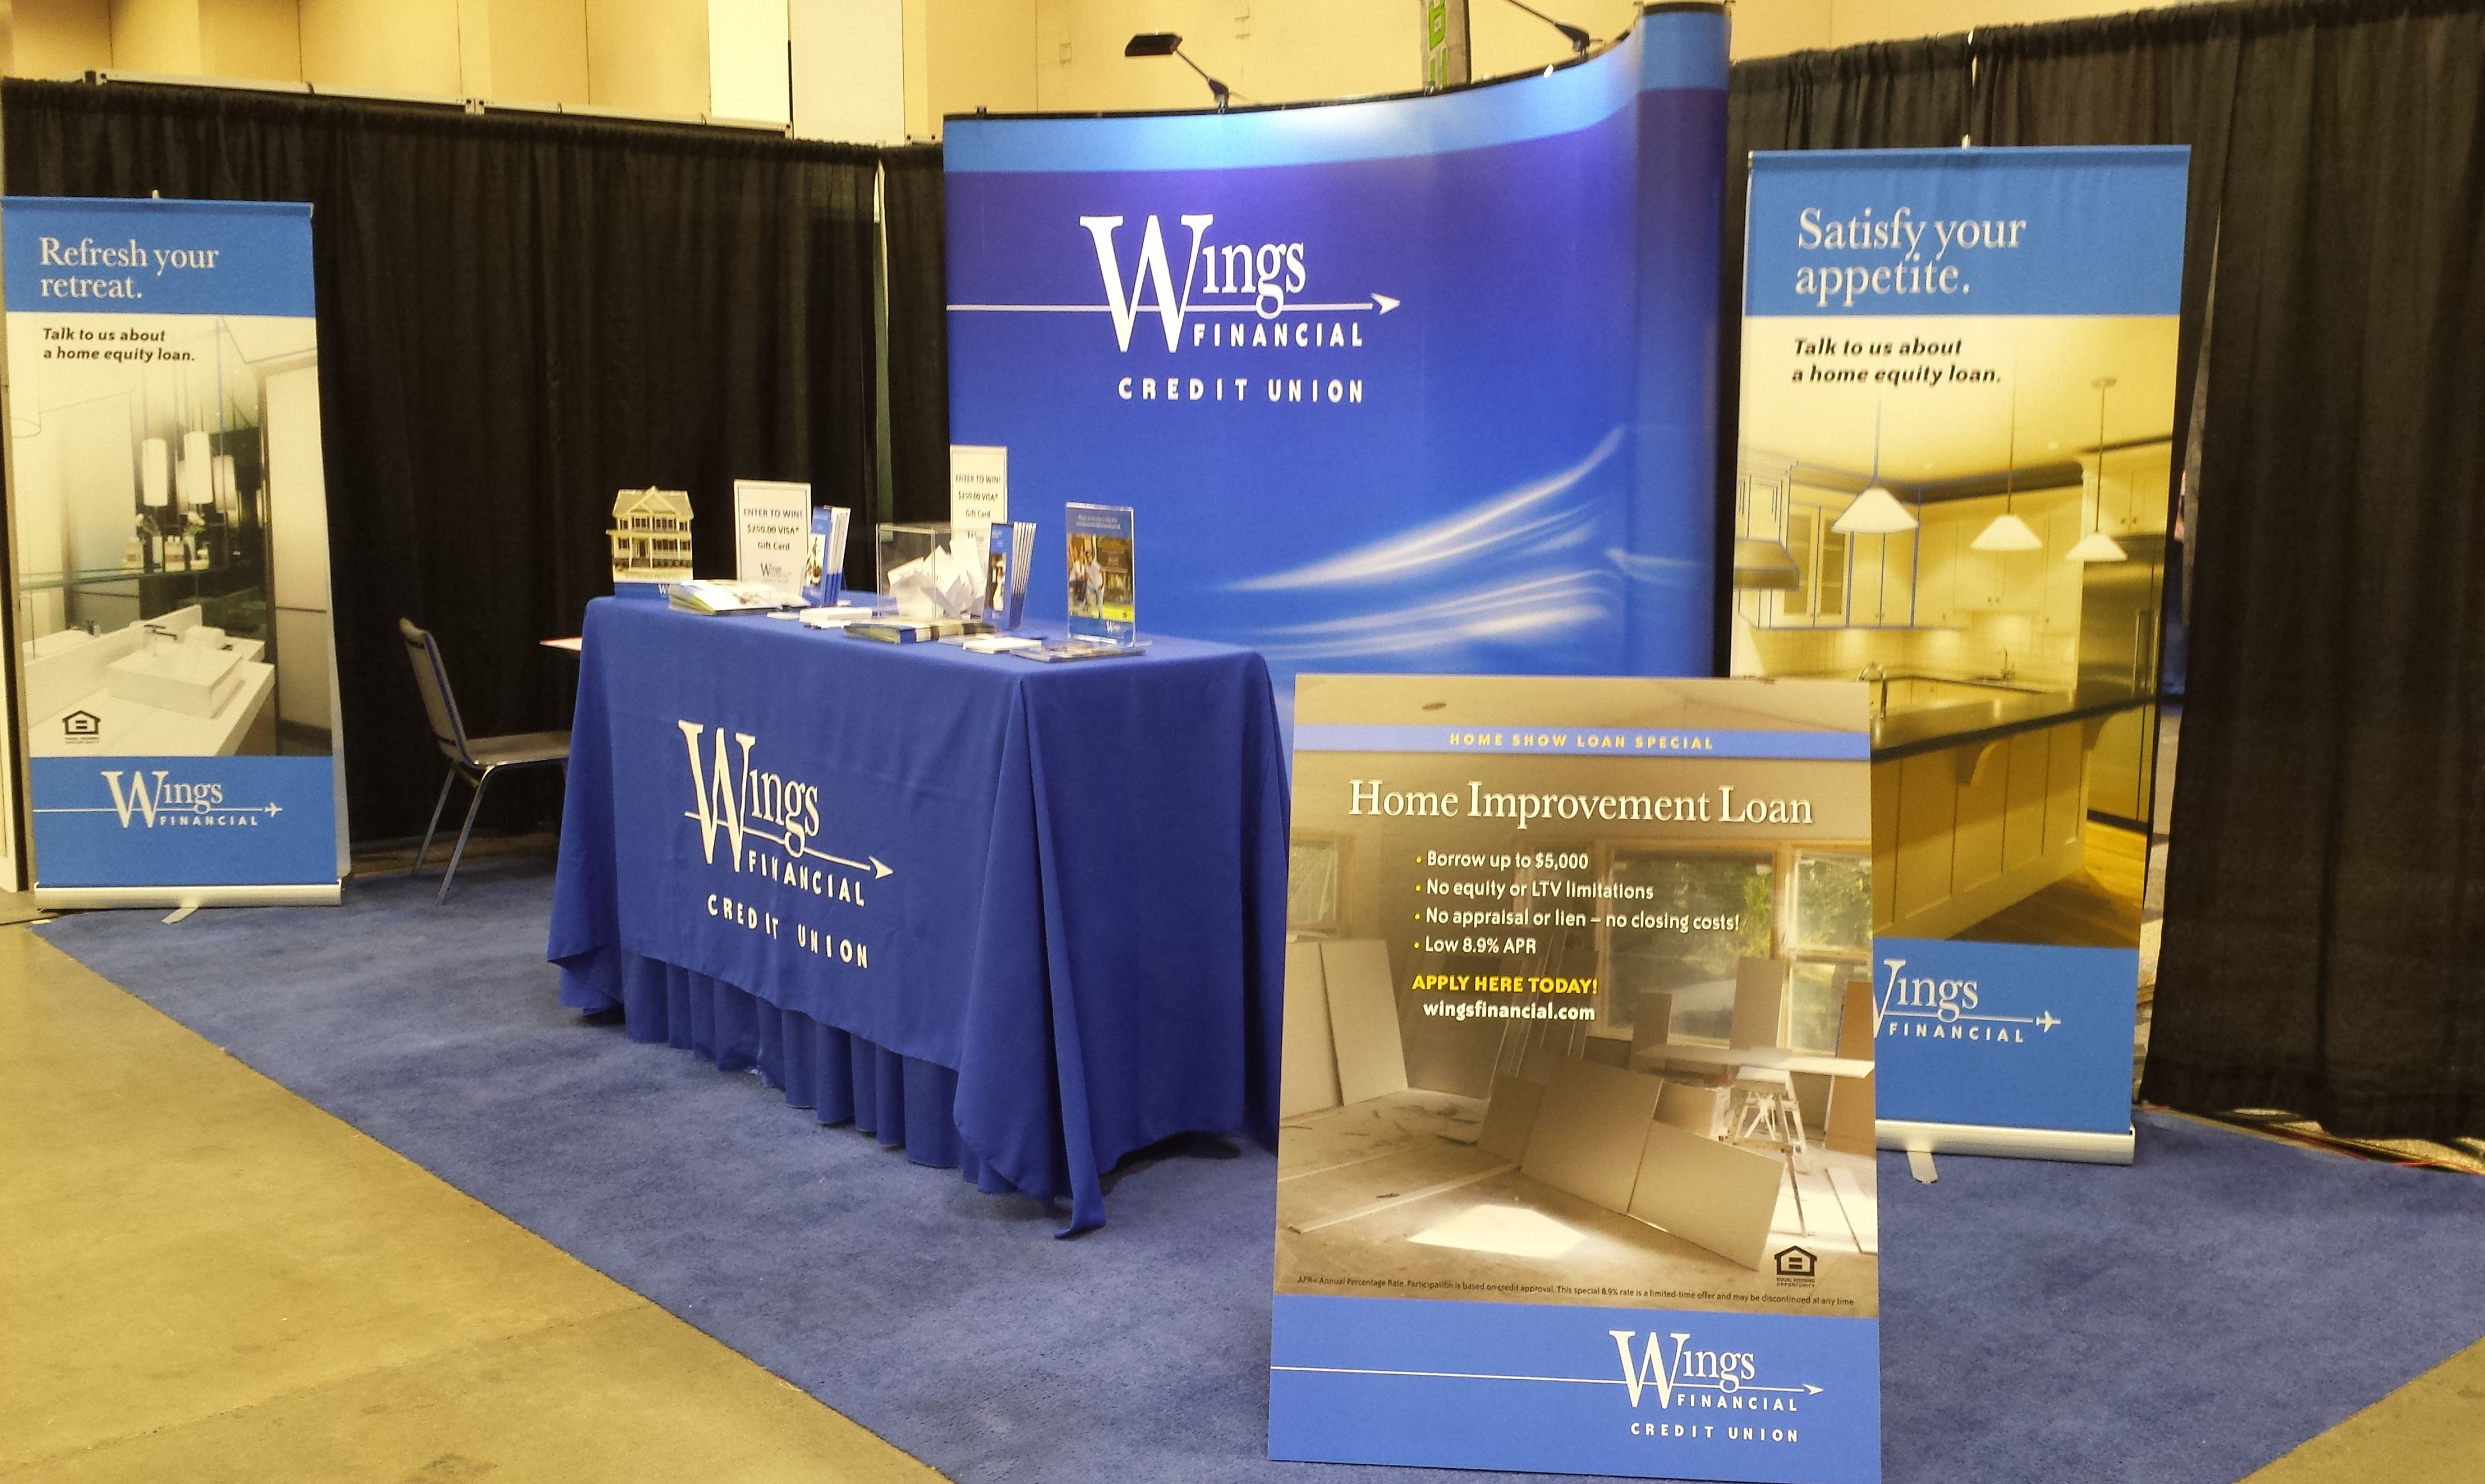 Wings Financial Booth At The 2014 Minneapolis Home + Garden Show. Our  Friendly Staff Will